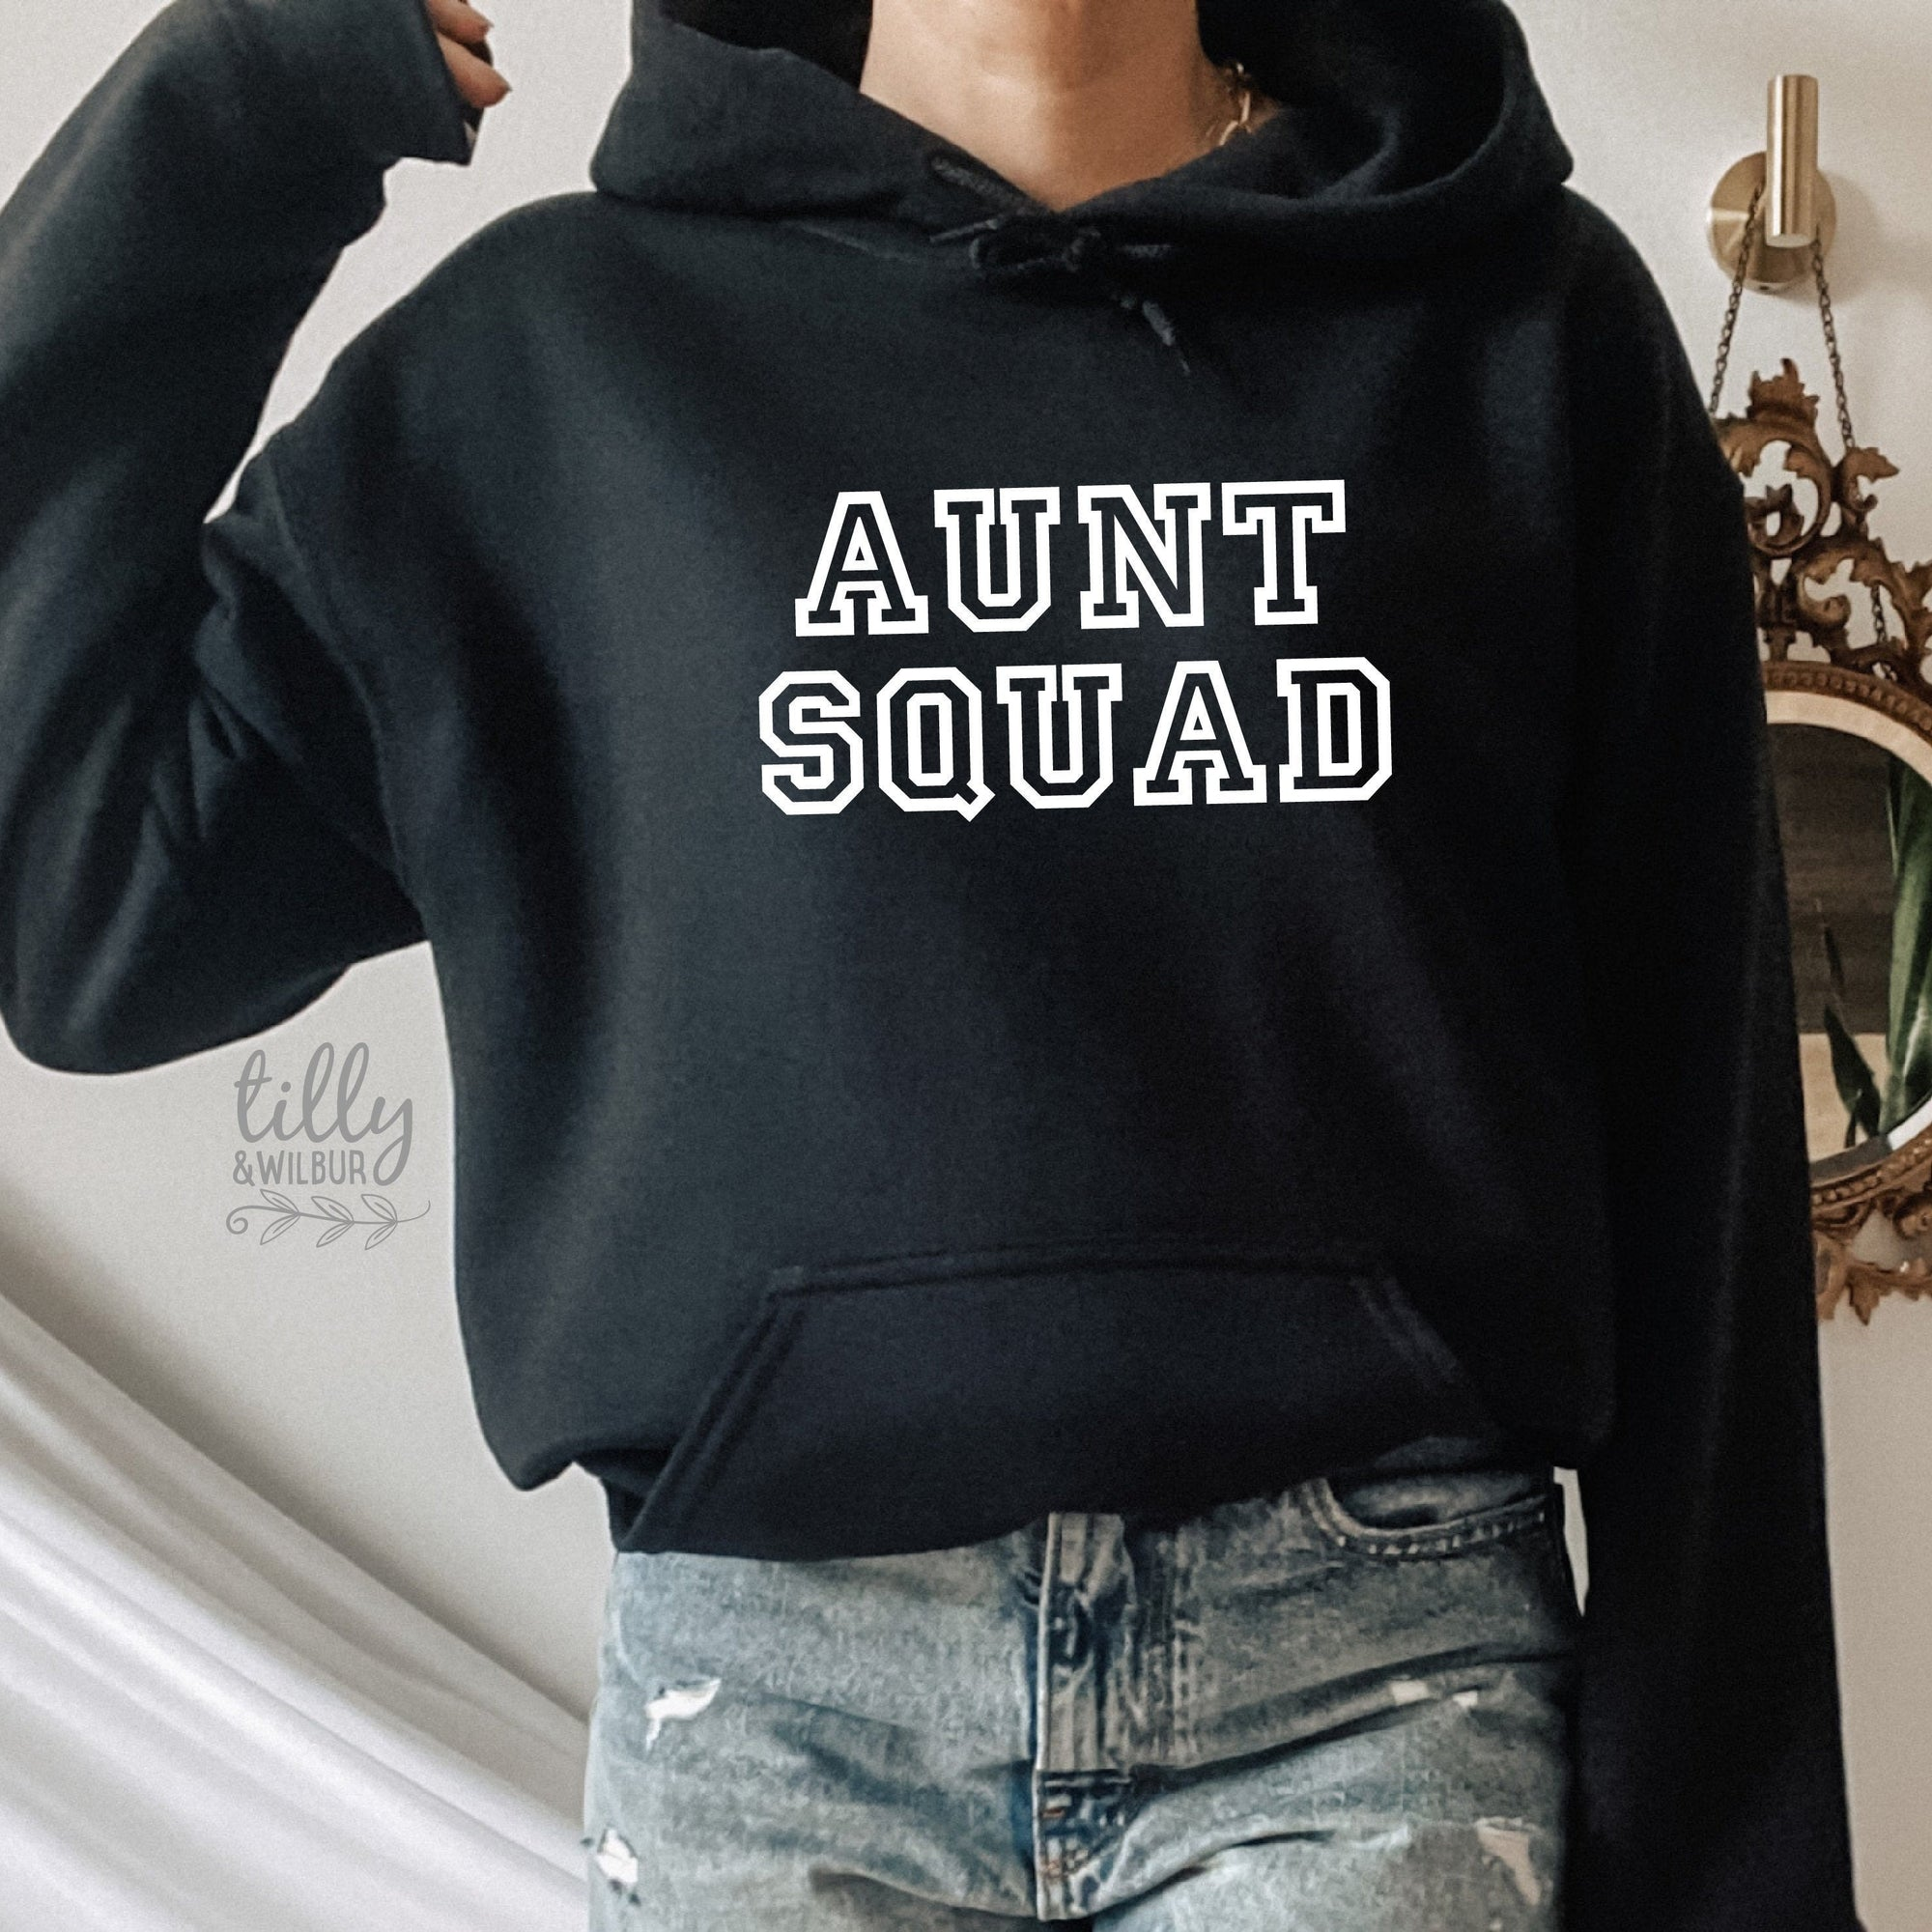 Aunty T-Shirt, Aunt Squad Hoodie, Pregnancy Announcement Jumper, I'm Going To Be An Aunty, Baby Shower, Aunt-To-Be, Auntie, Niece Nephew